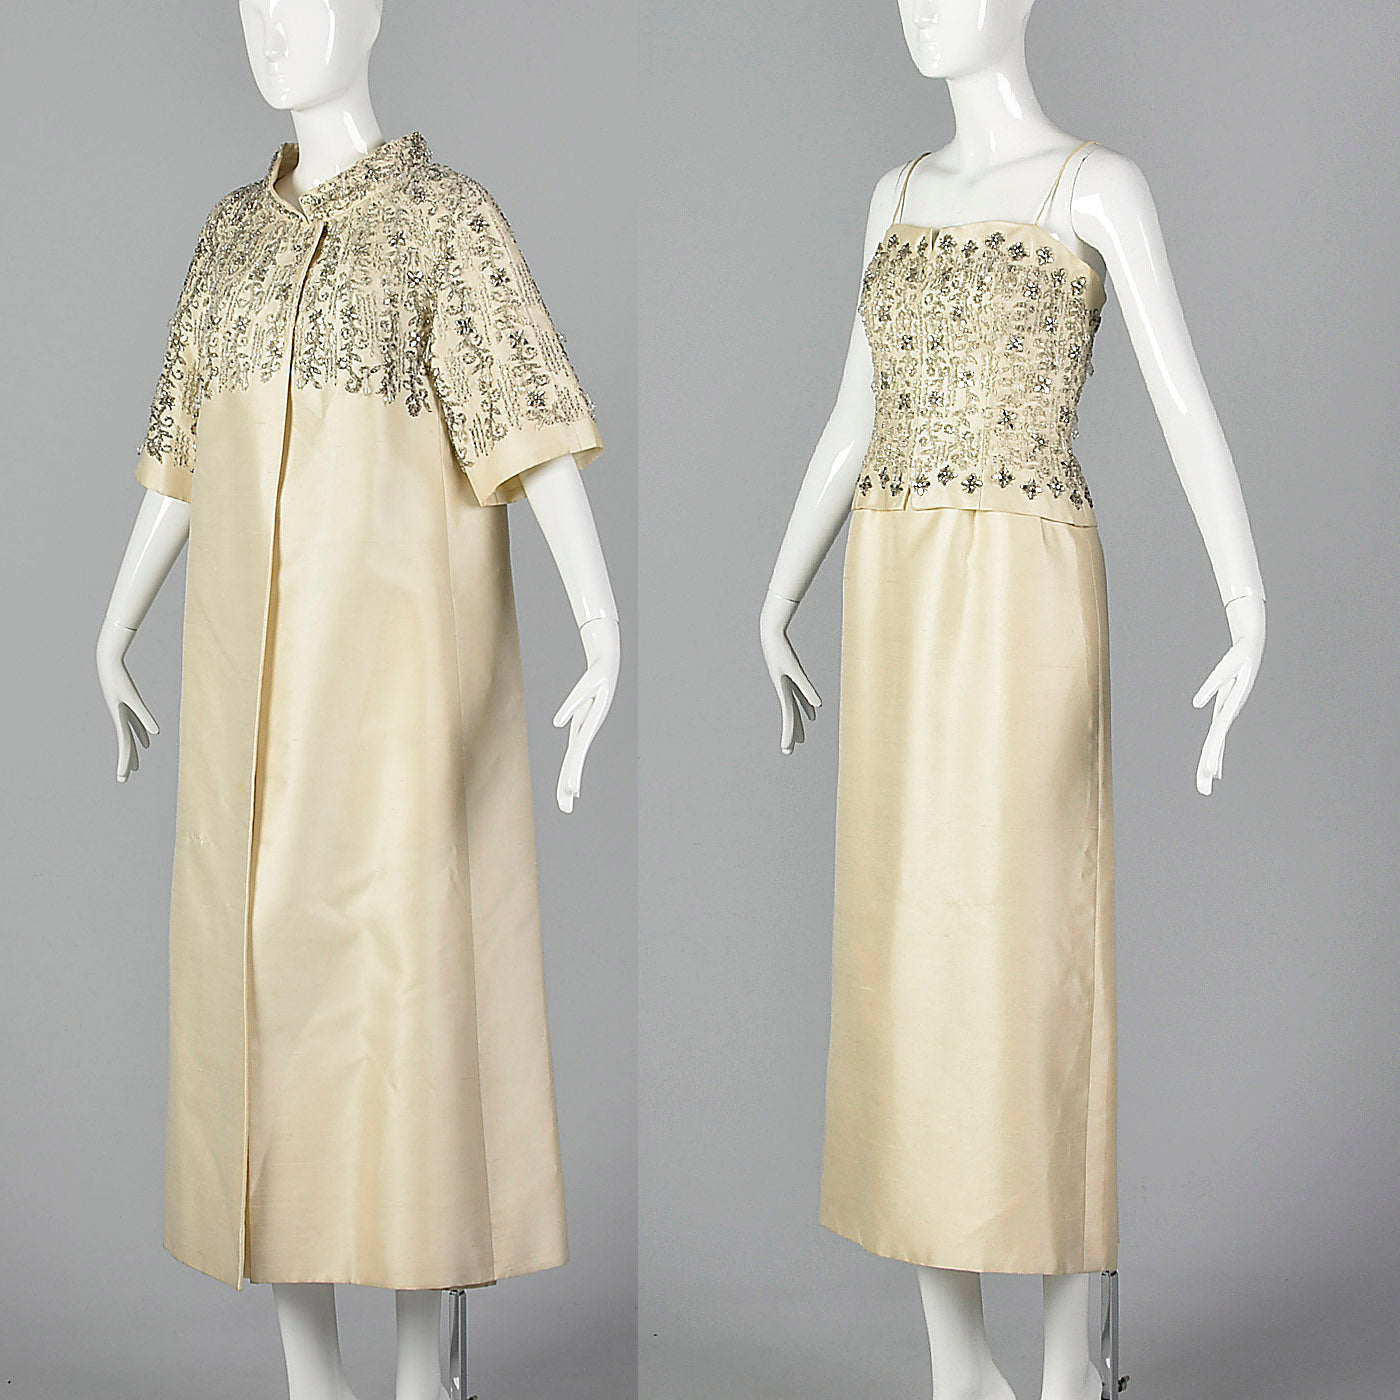 1960s Long Beaded Wedding Dress with Formal Matching Opera Coat